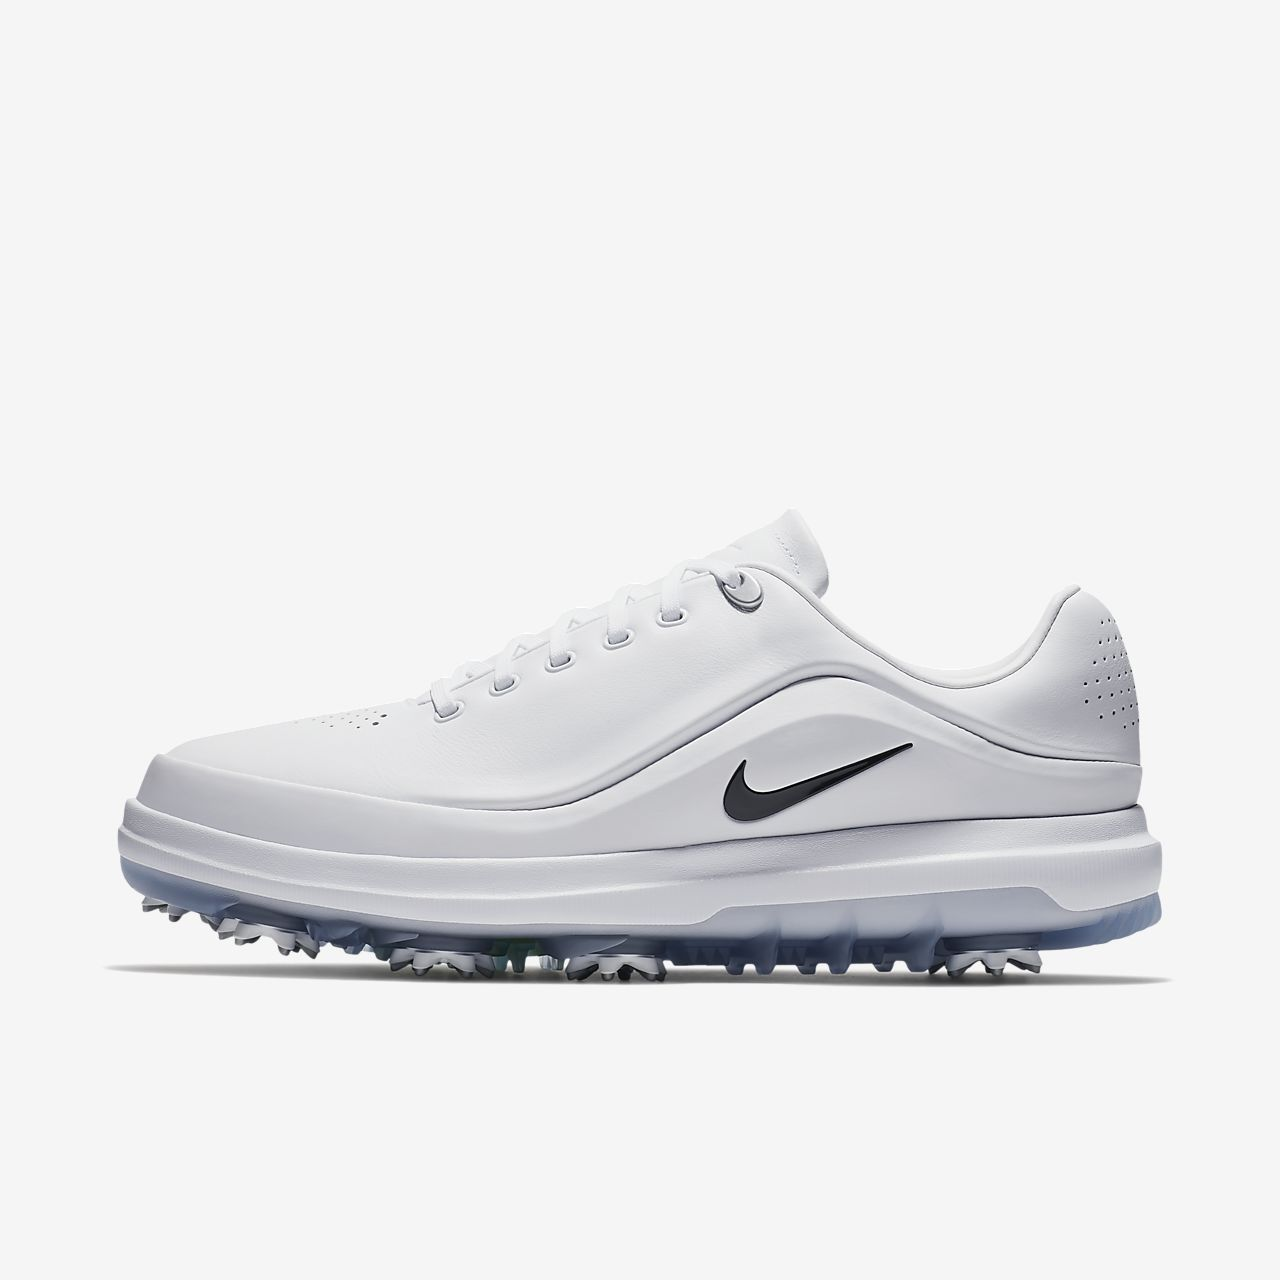 73073c763359 Nike Air Zoom Precision Men s Golf Shoe. Nike.com GB